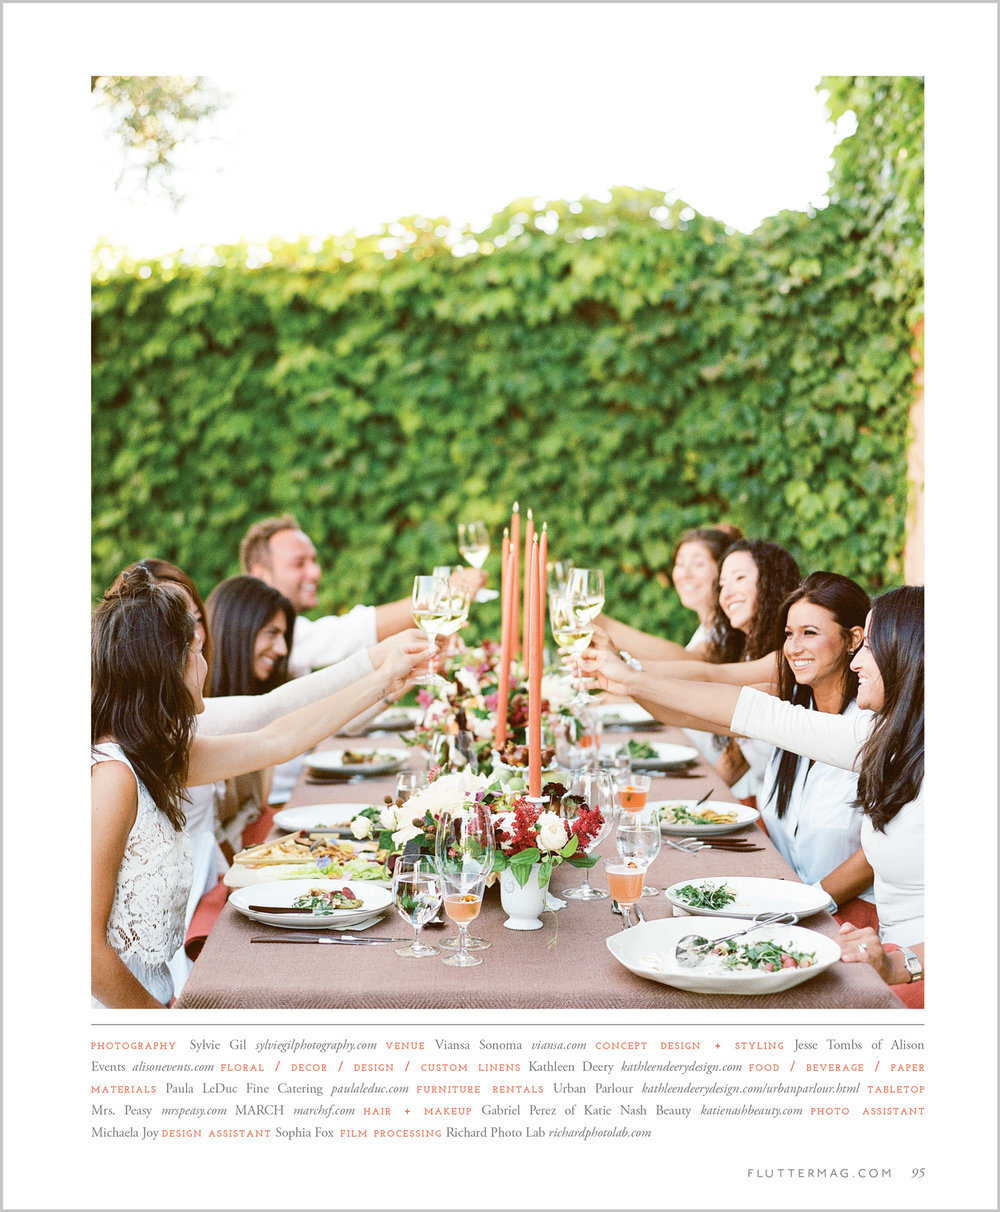 The party guests toast at a beautifully decorated table in Flutter Magazine; Sylvie Gil Photography